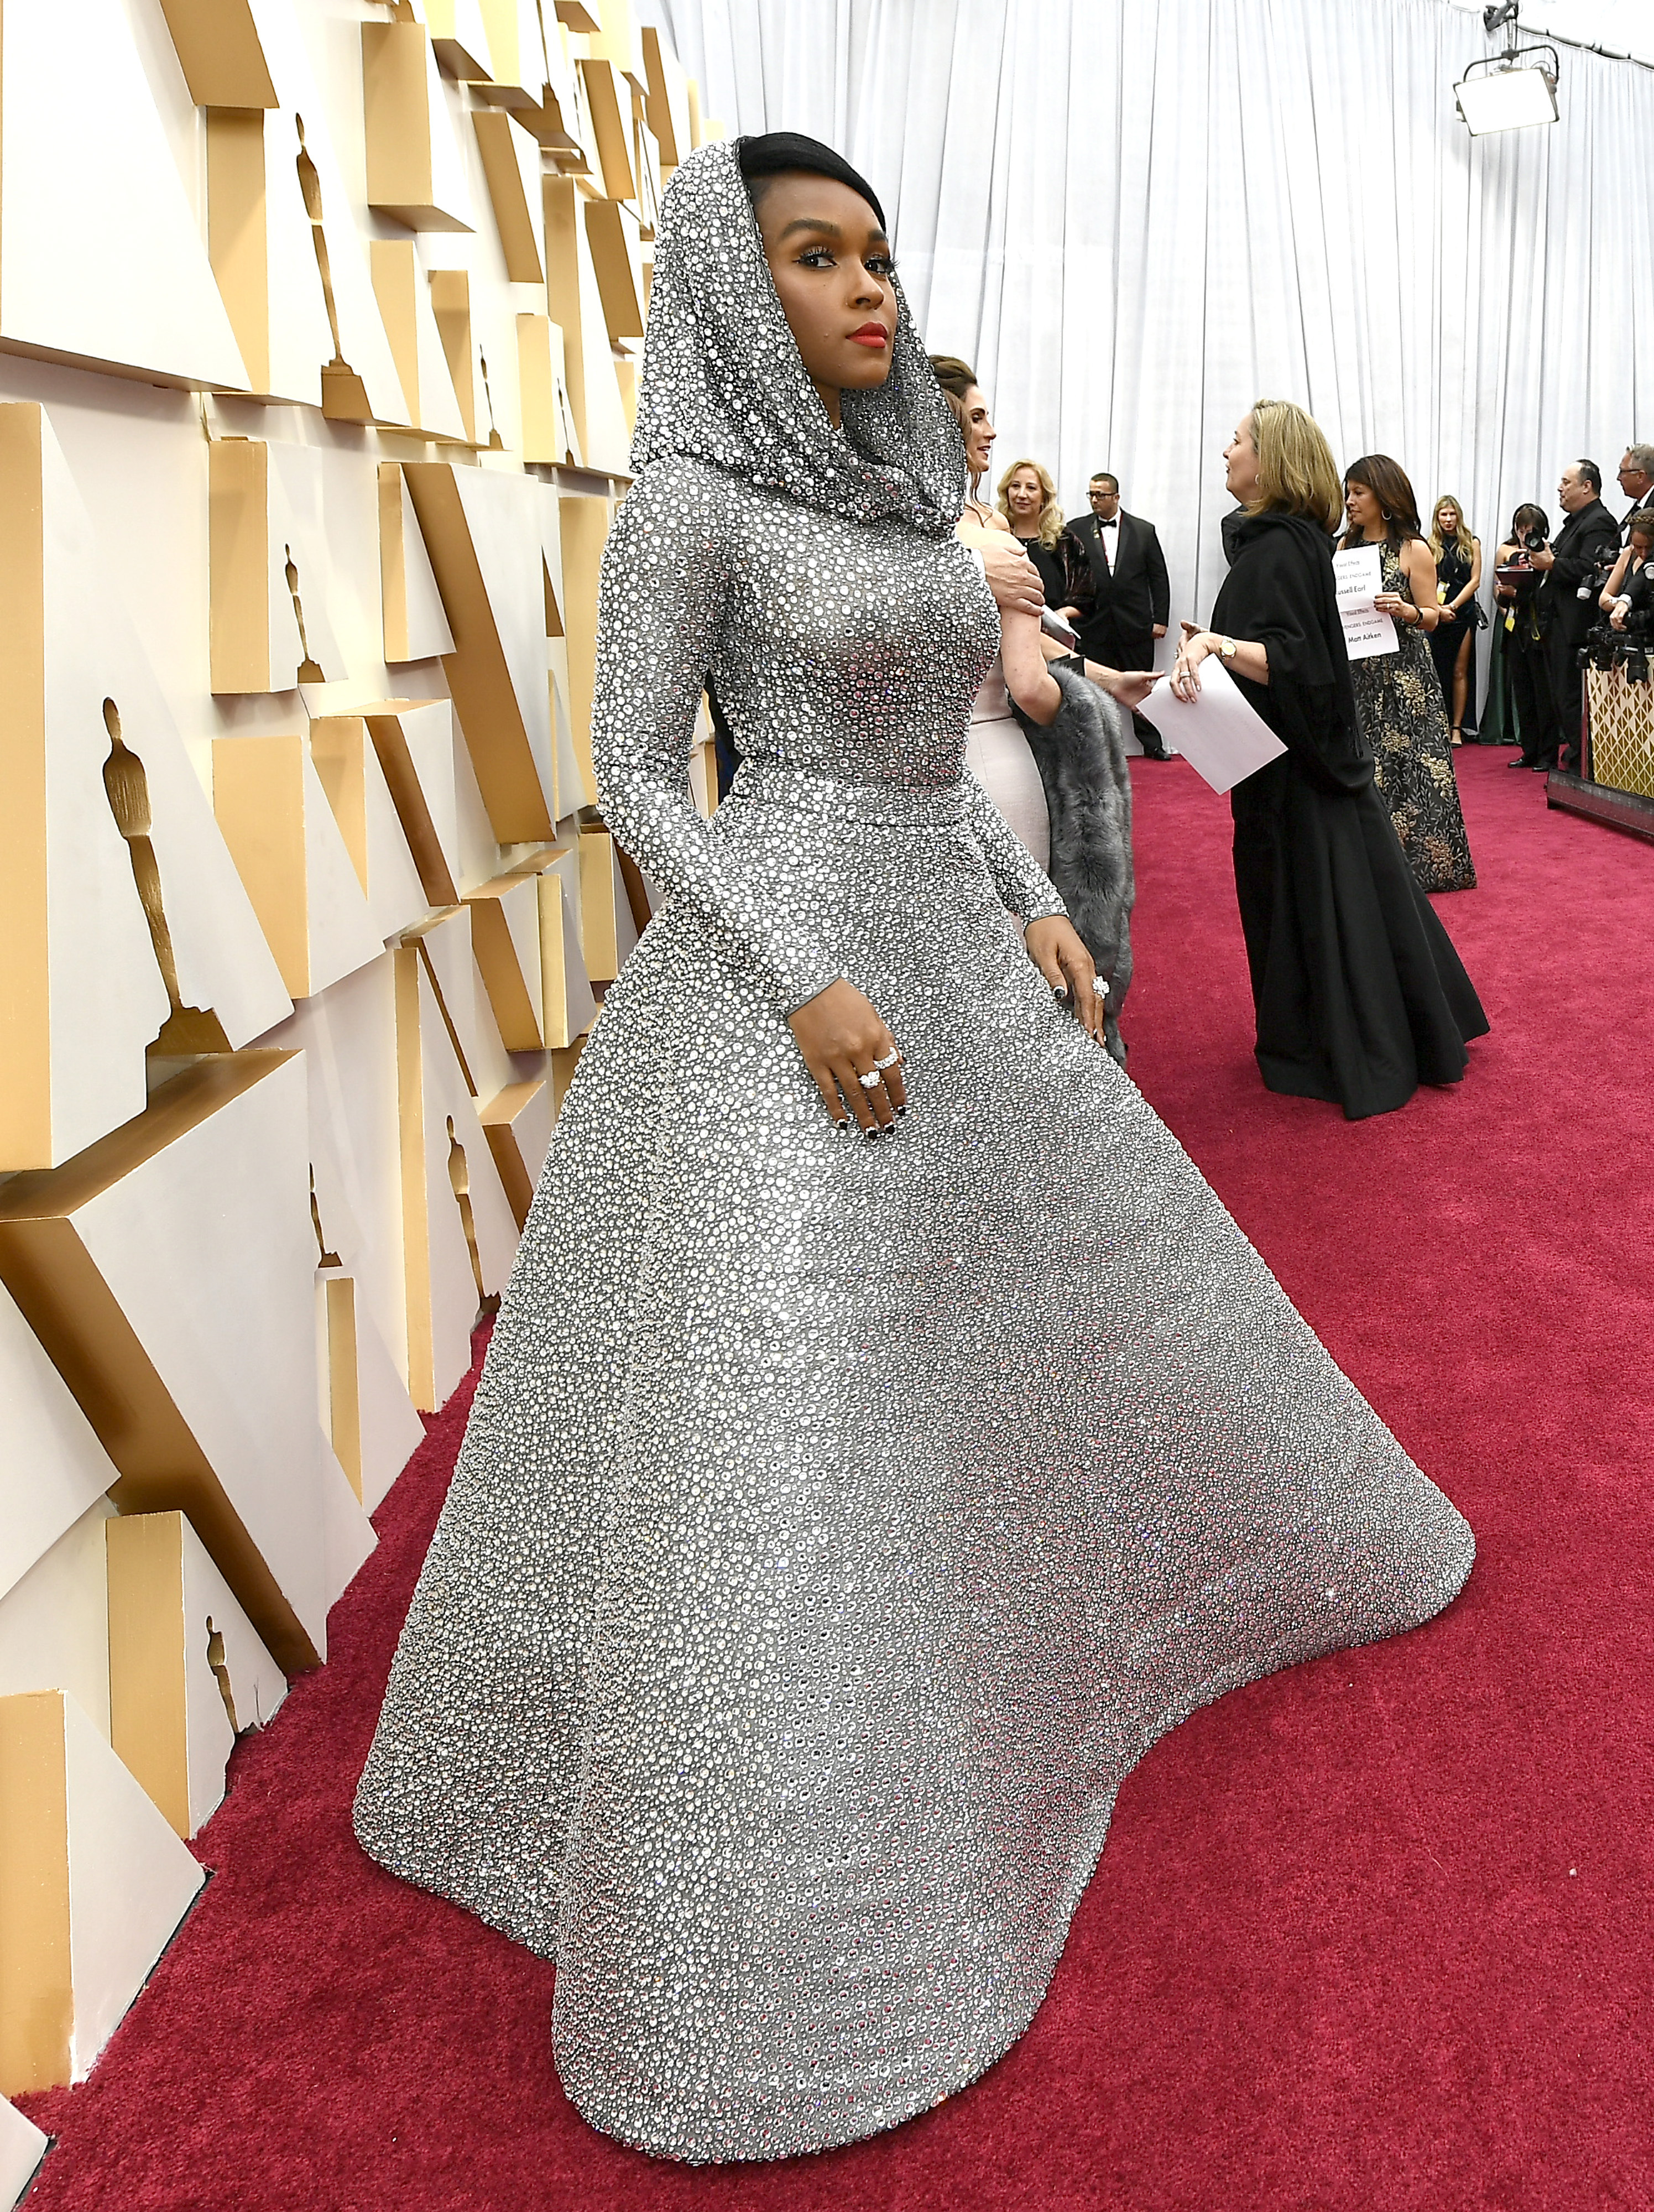 HOLLYWOOD, CALIFORNIA - FEBRUARY 09: Janelle Monáe attends the 92nd Annual Academy Awards at Hollywood and Highland on February 09, 2020 in Hollywood, California. (Photo by Kevork Djansezian/Getty Images)